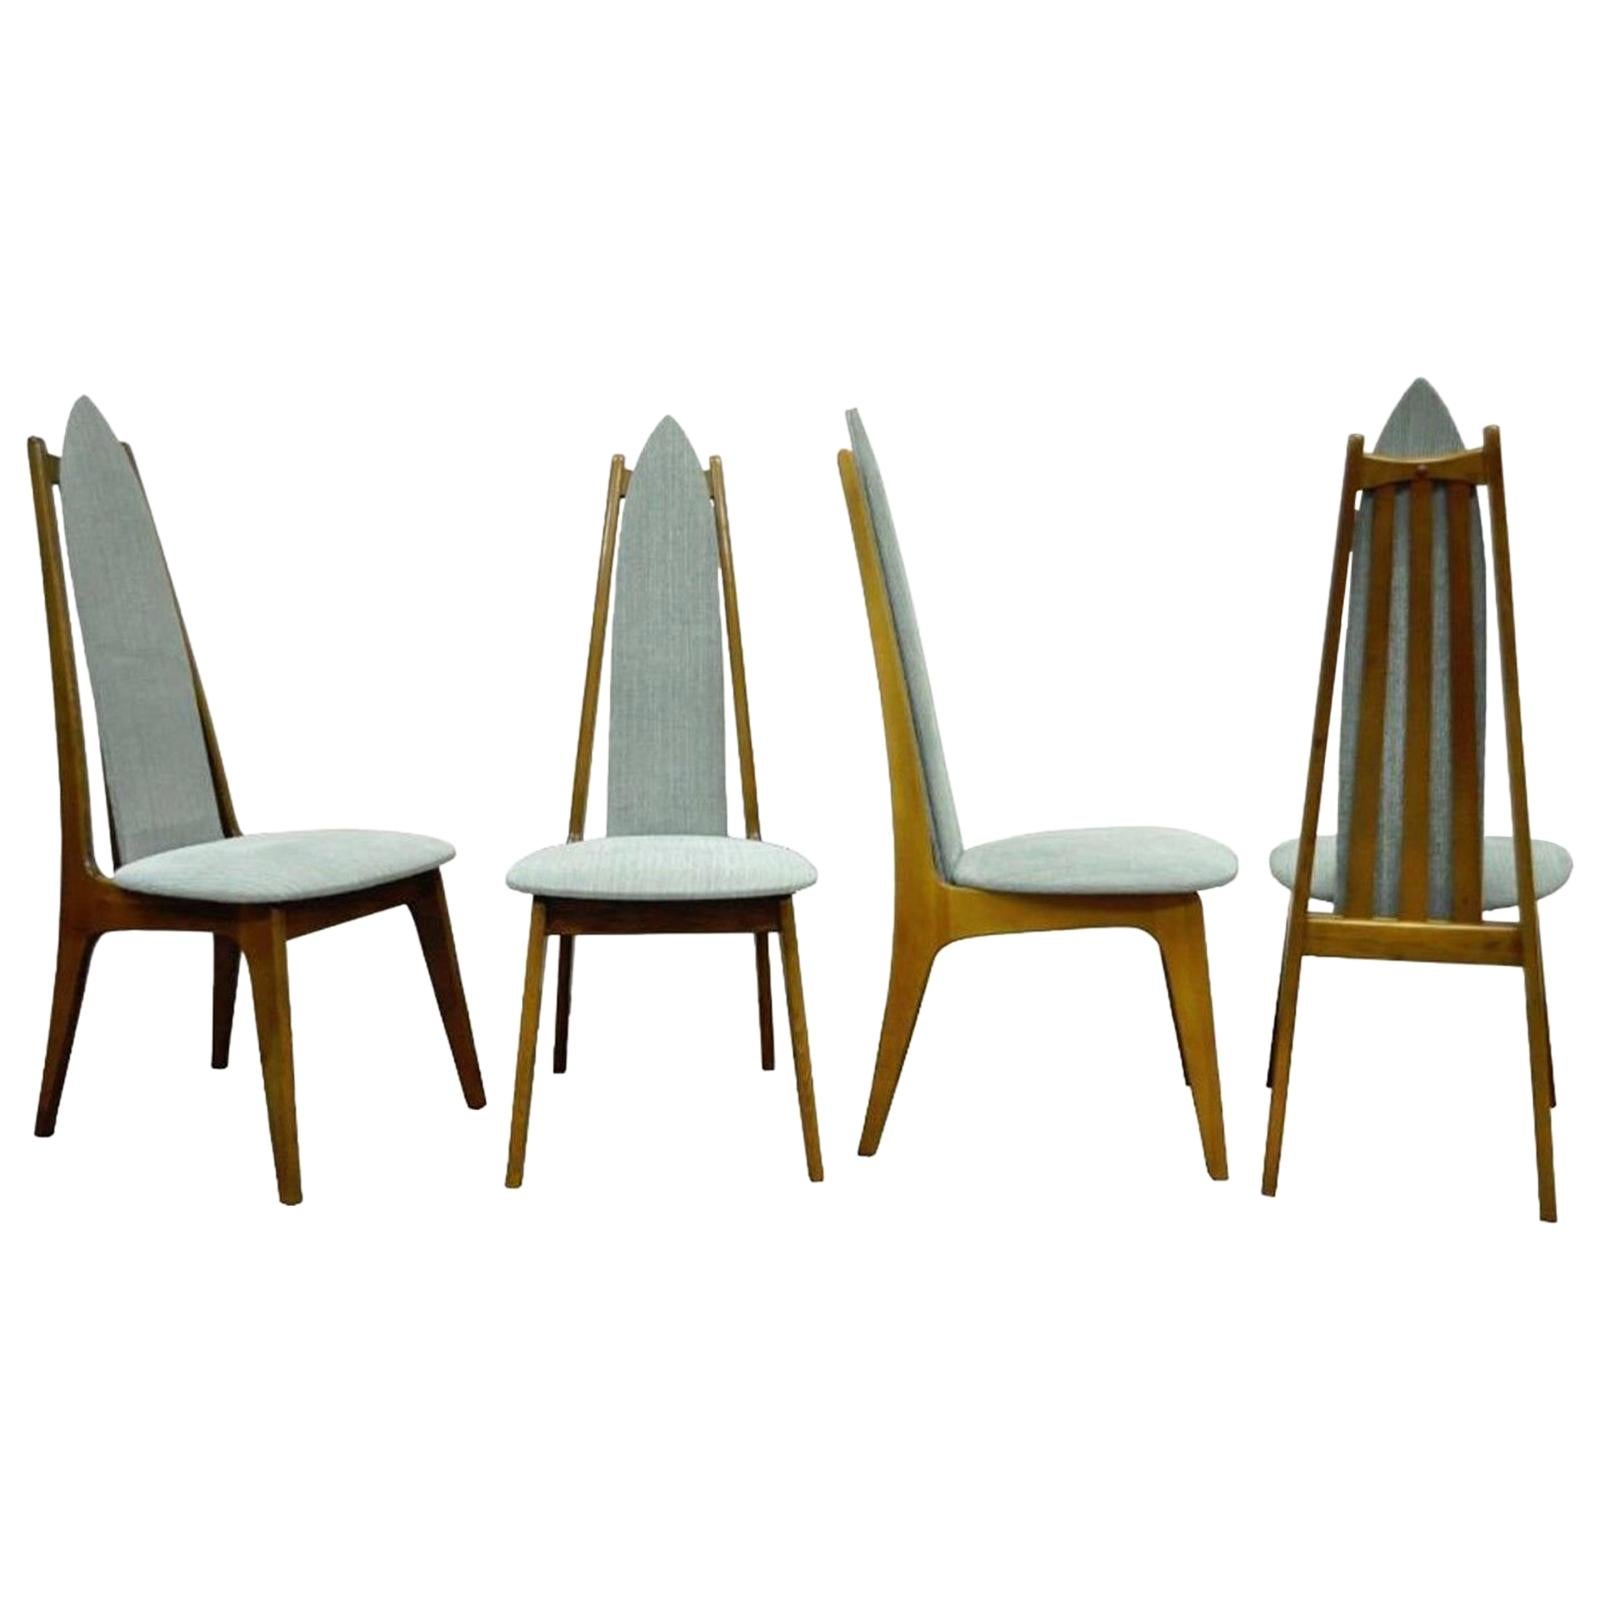 Charmant Set Of Four Mid Century Modern Sculptural Walnut Dining Chairs Danish Style  For Sale